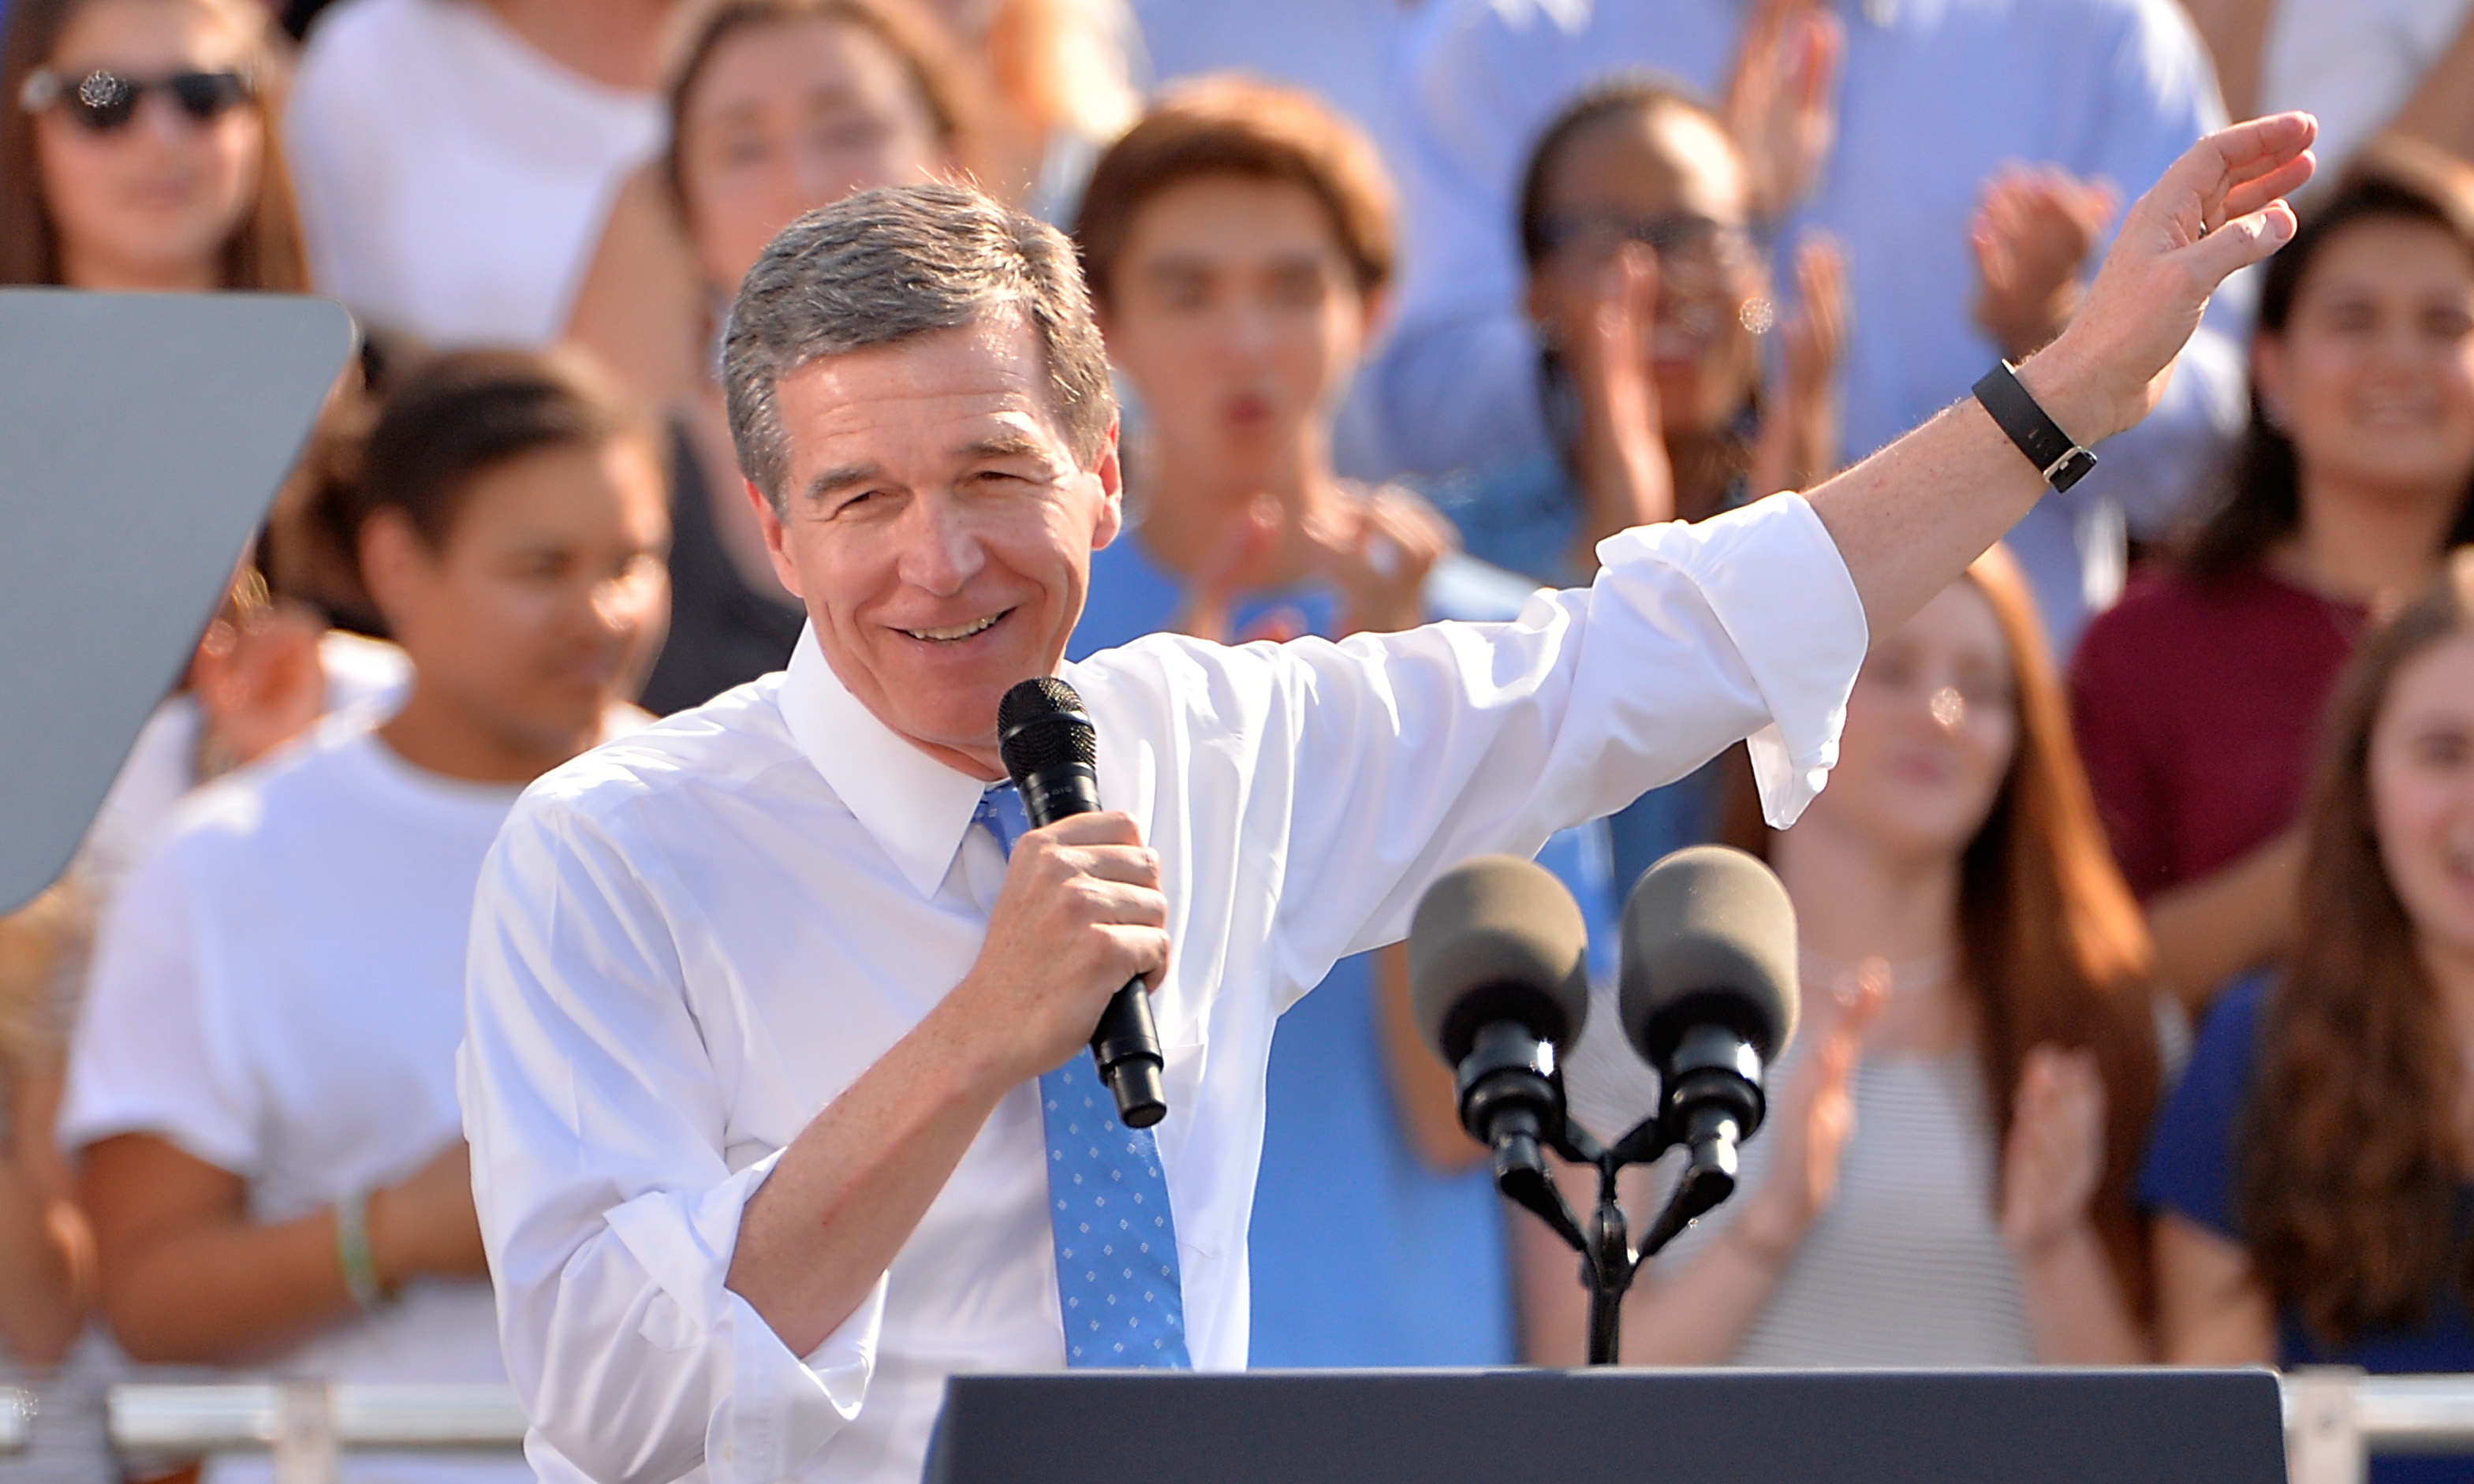 North Carolina Governor Goes Against Wishes of Constituents, Vetoes Born-Alive Bill